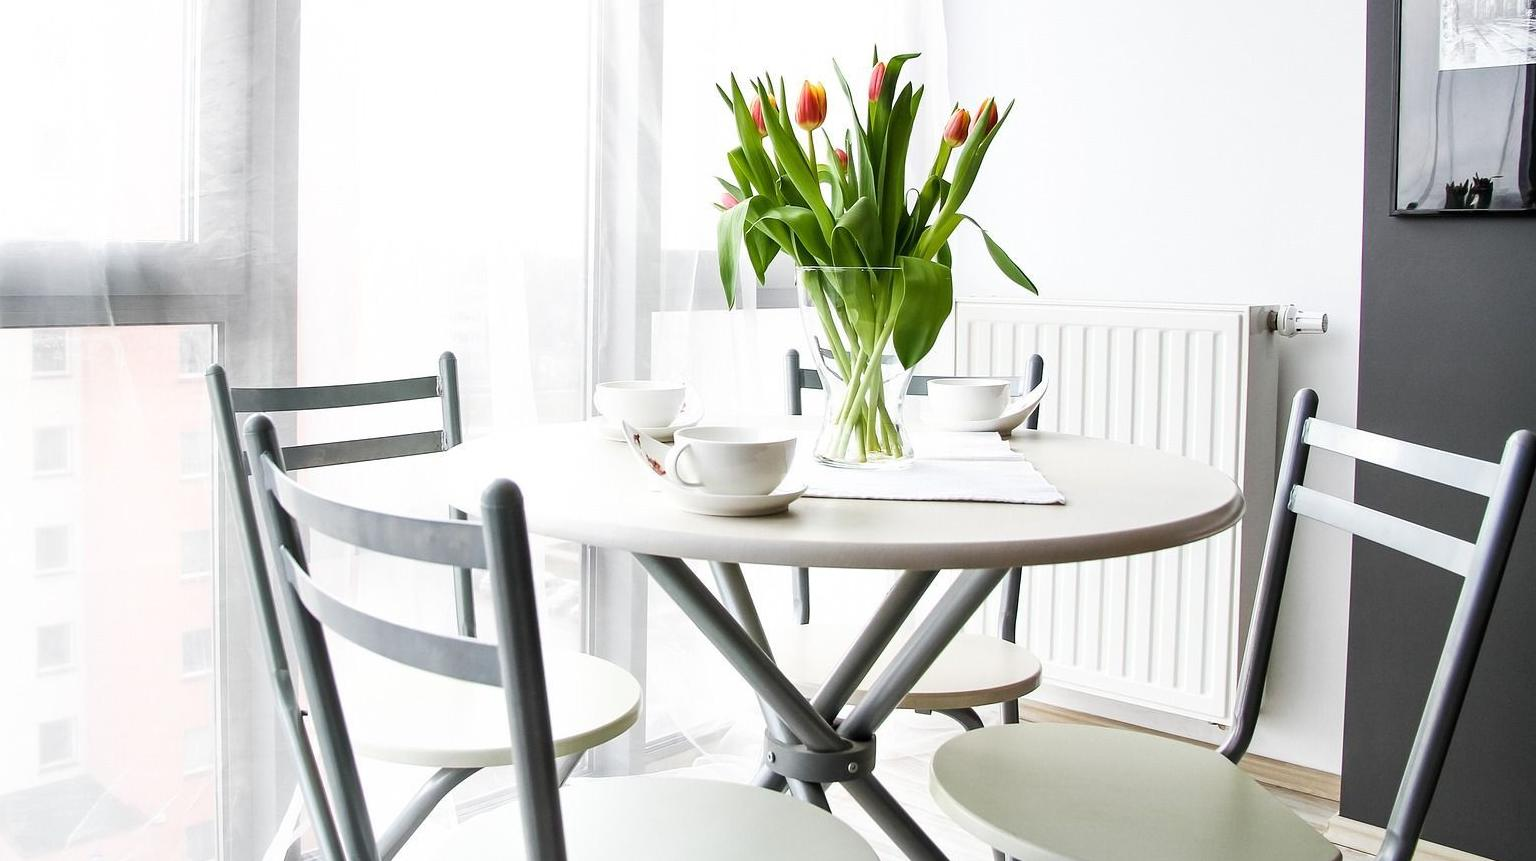 IRIS APARTMENTS -  stock photo of coffee table with 3 chairs, cups and flowers in a vase